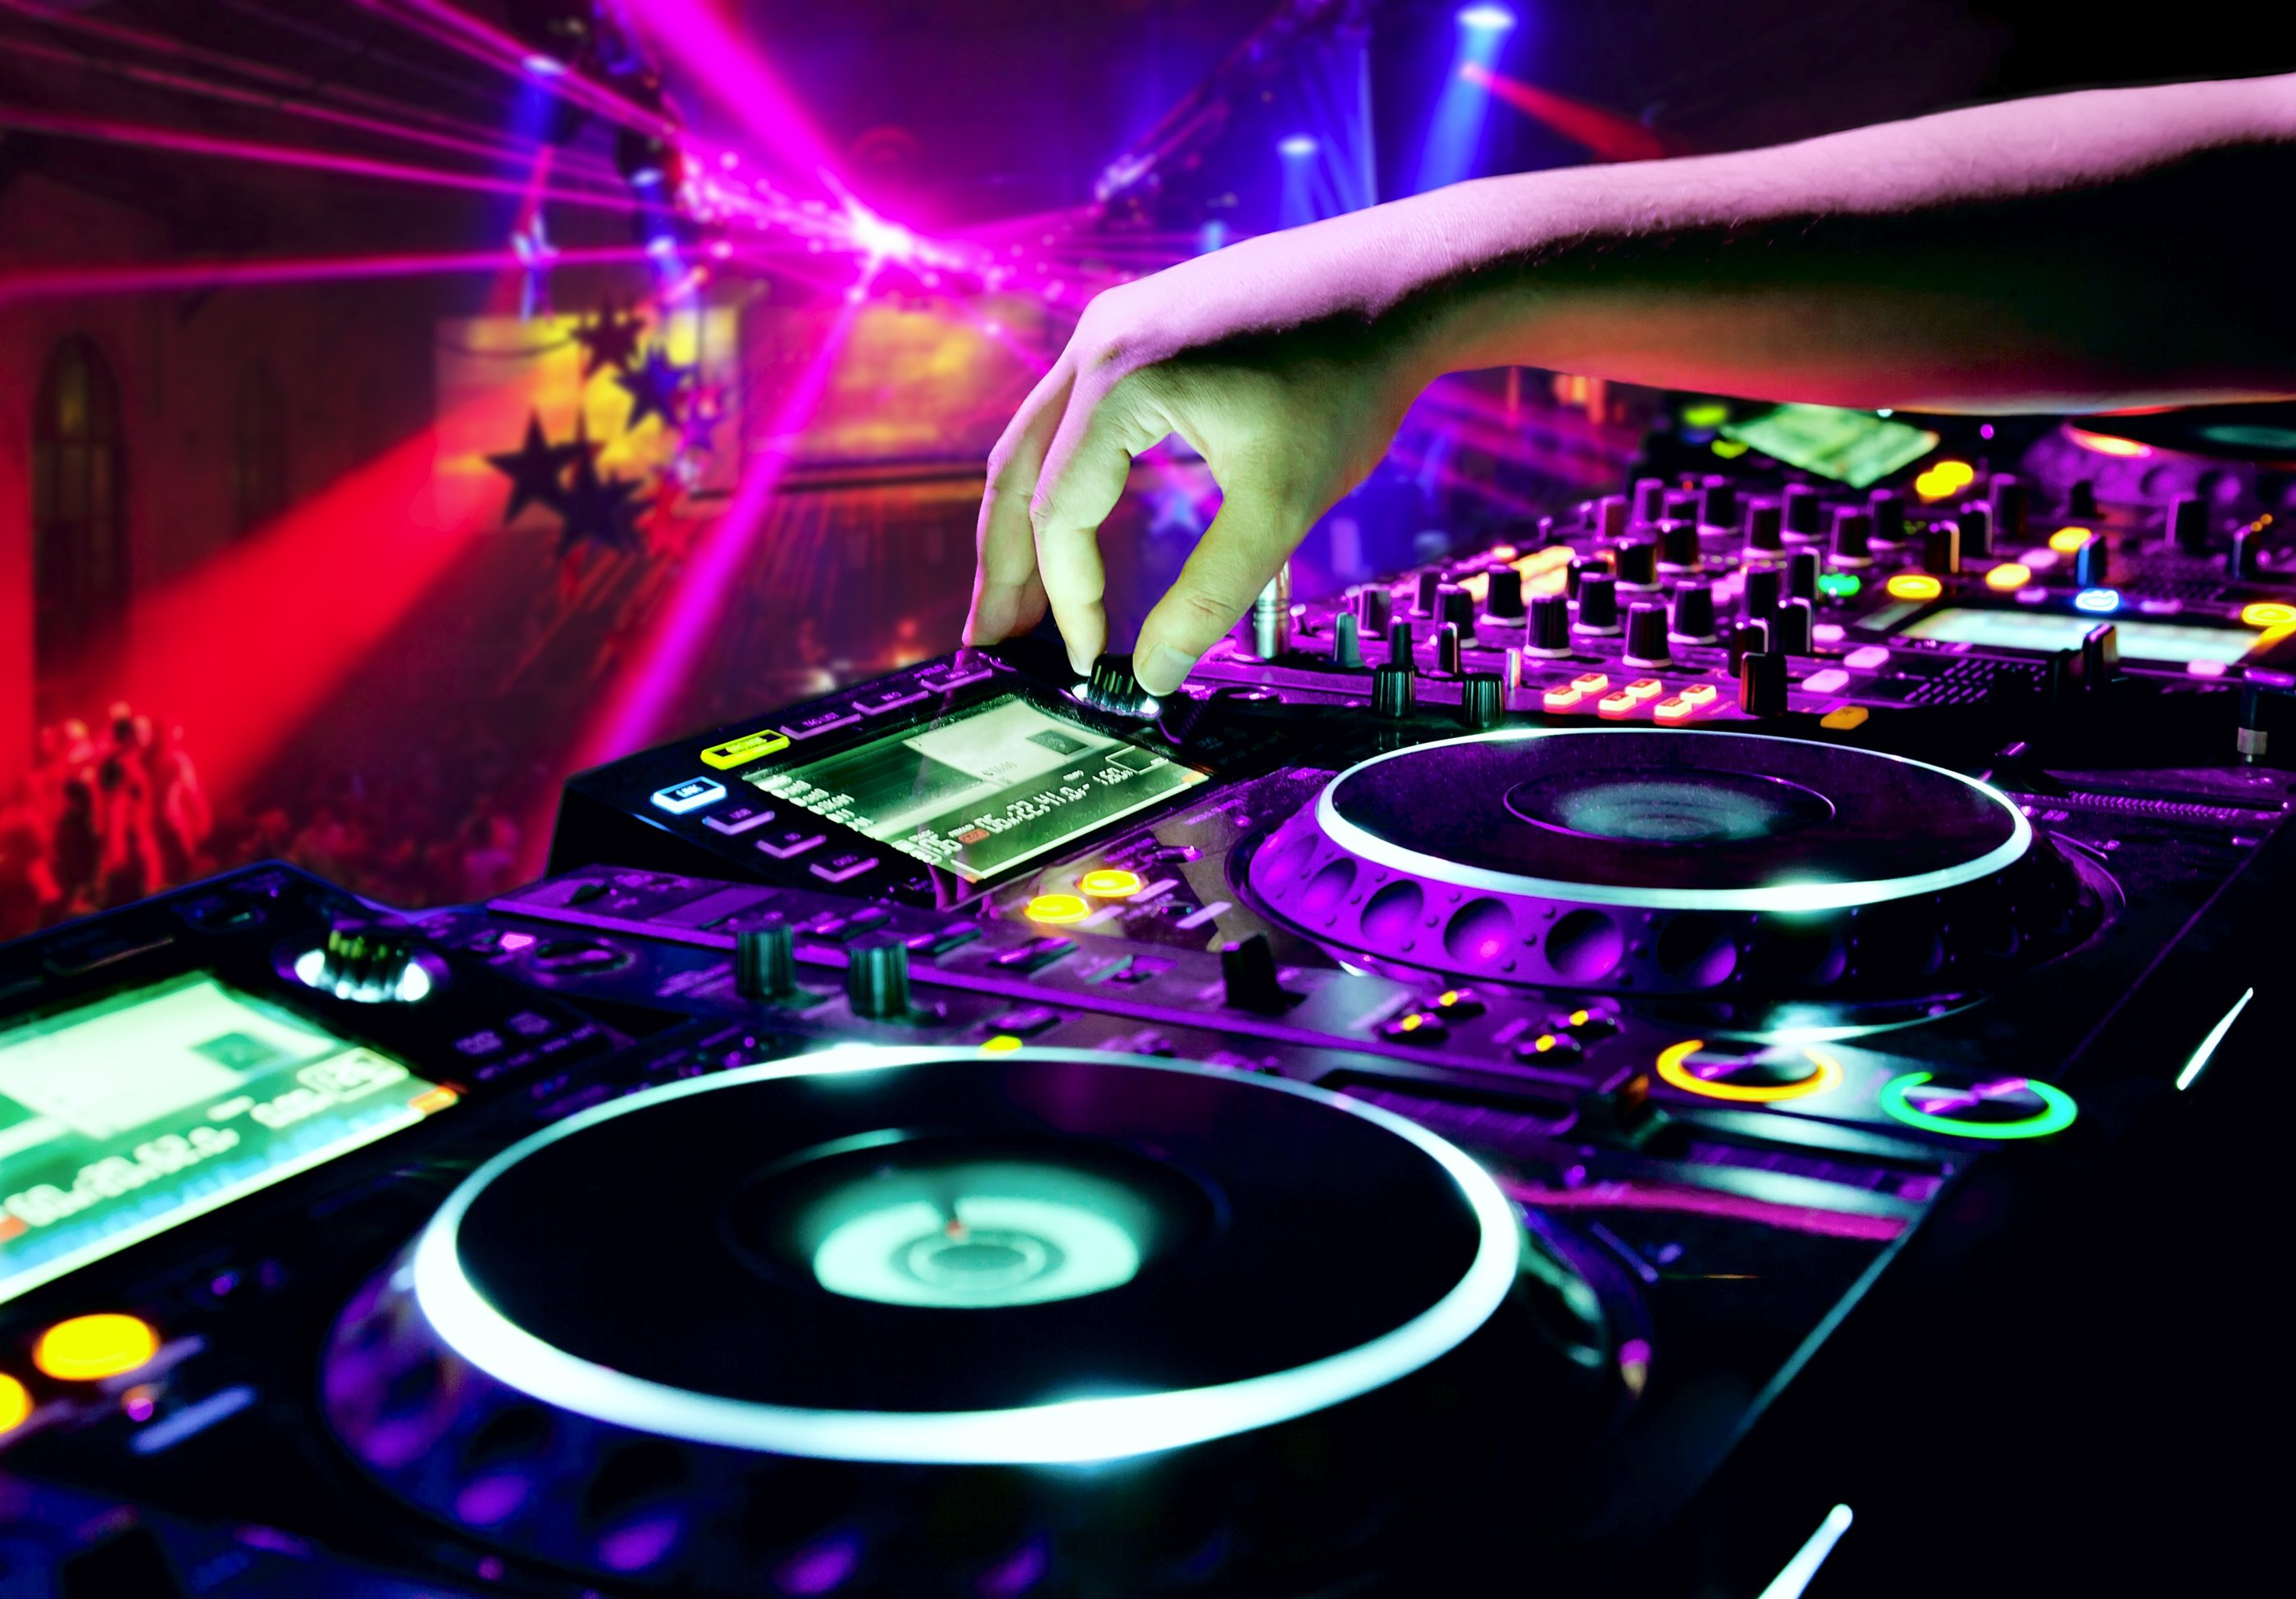 Disco dance music club wallpaper 2800x1950 458694 for Popular house music